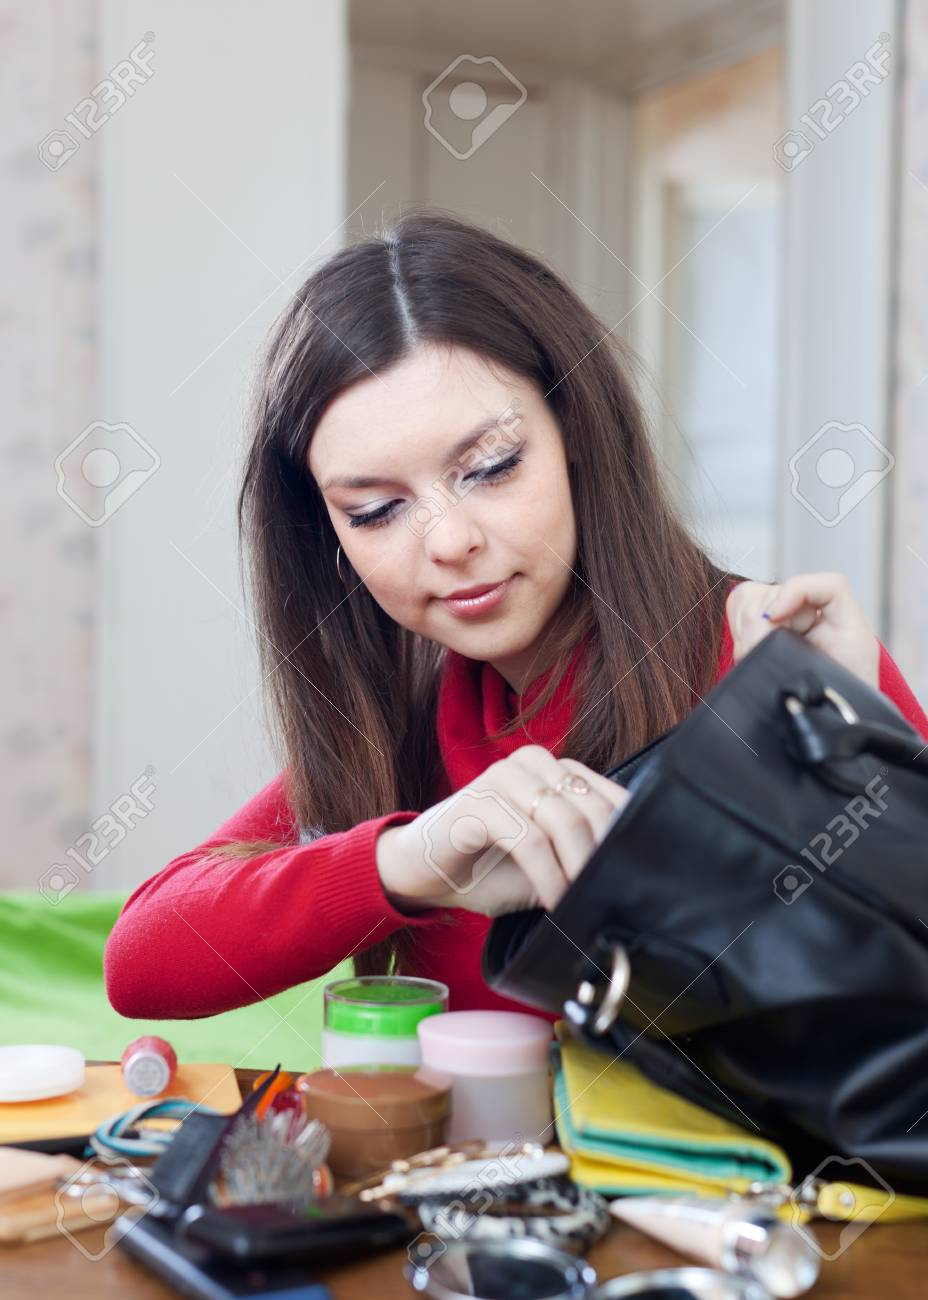 Young woman can not finding anything in her purse at table Stock Photo - 17878208